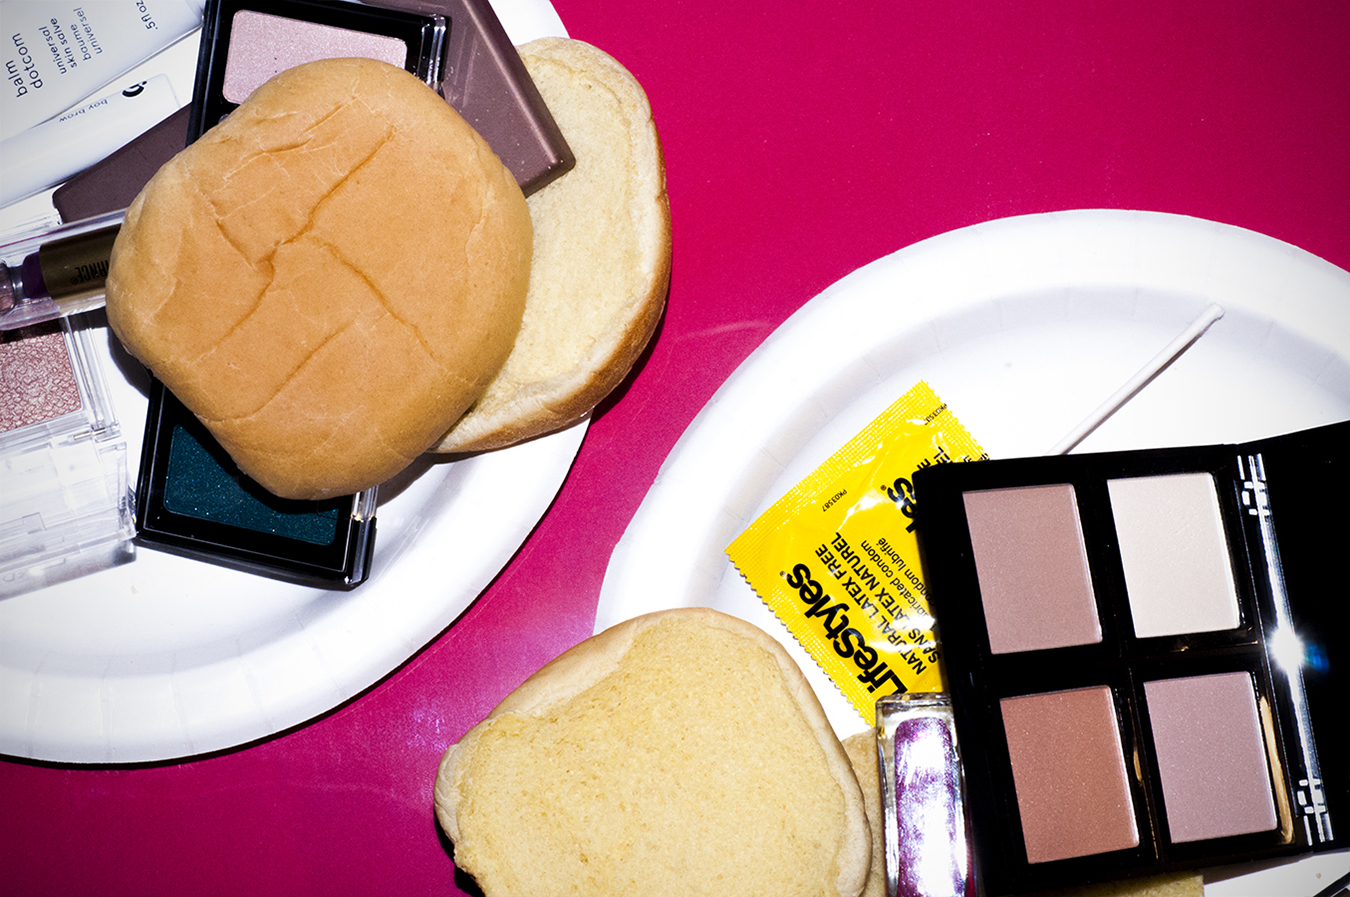 Noel_Zheng_photography_student_upenn_Tony_Ward_Studio_flash_photography_still_life_fashion_domestic_feminism_equality_makeup_burger_junk_food_beauty_pop_art